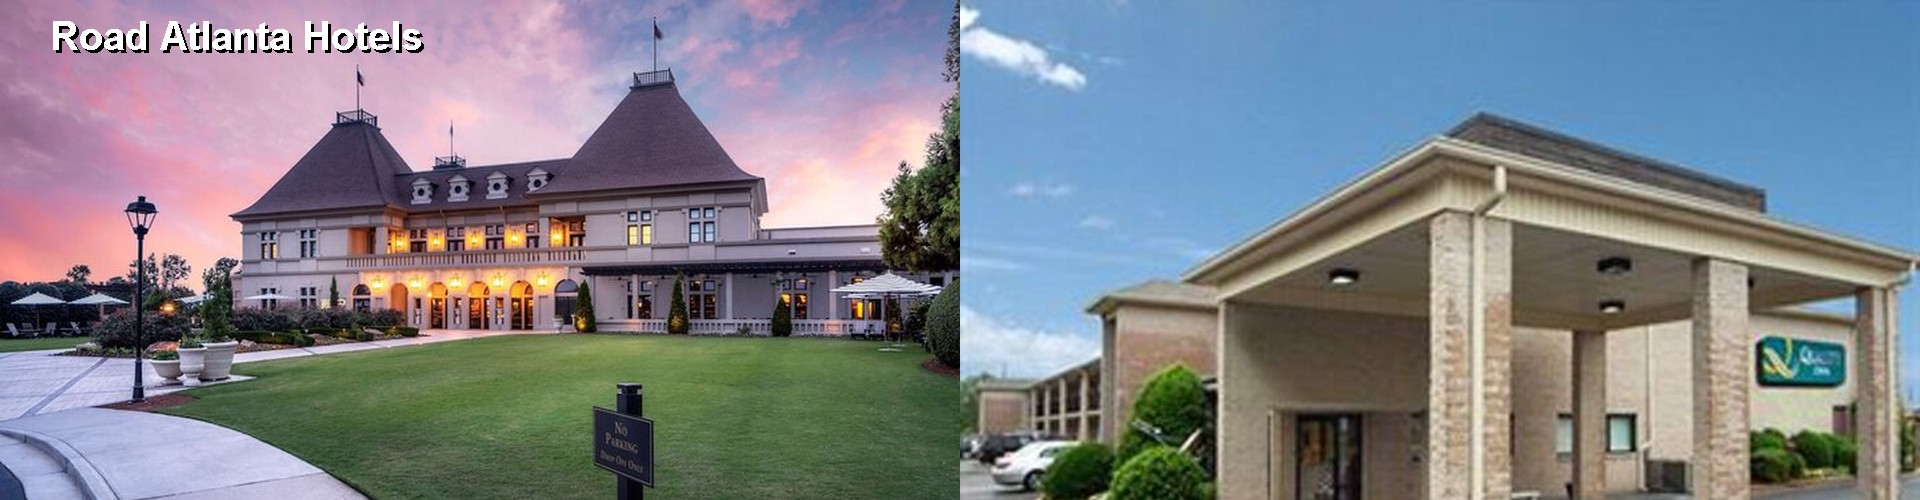 5 Best Hotels near Road Atlanta